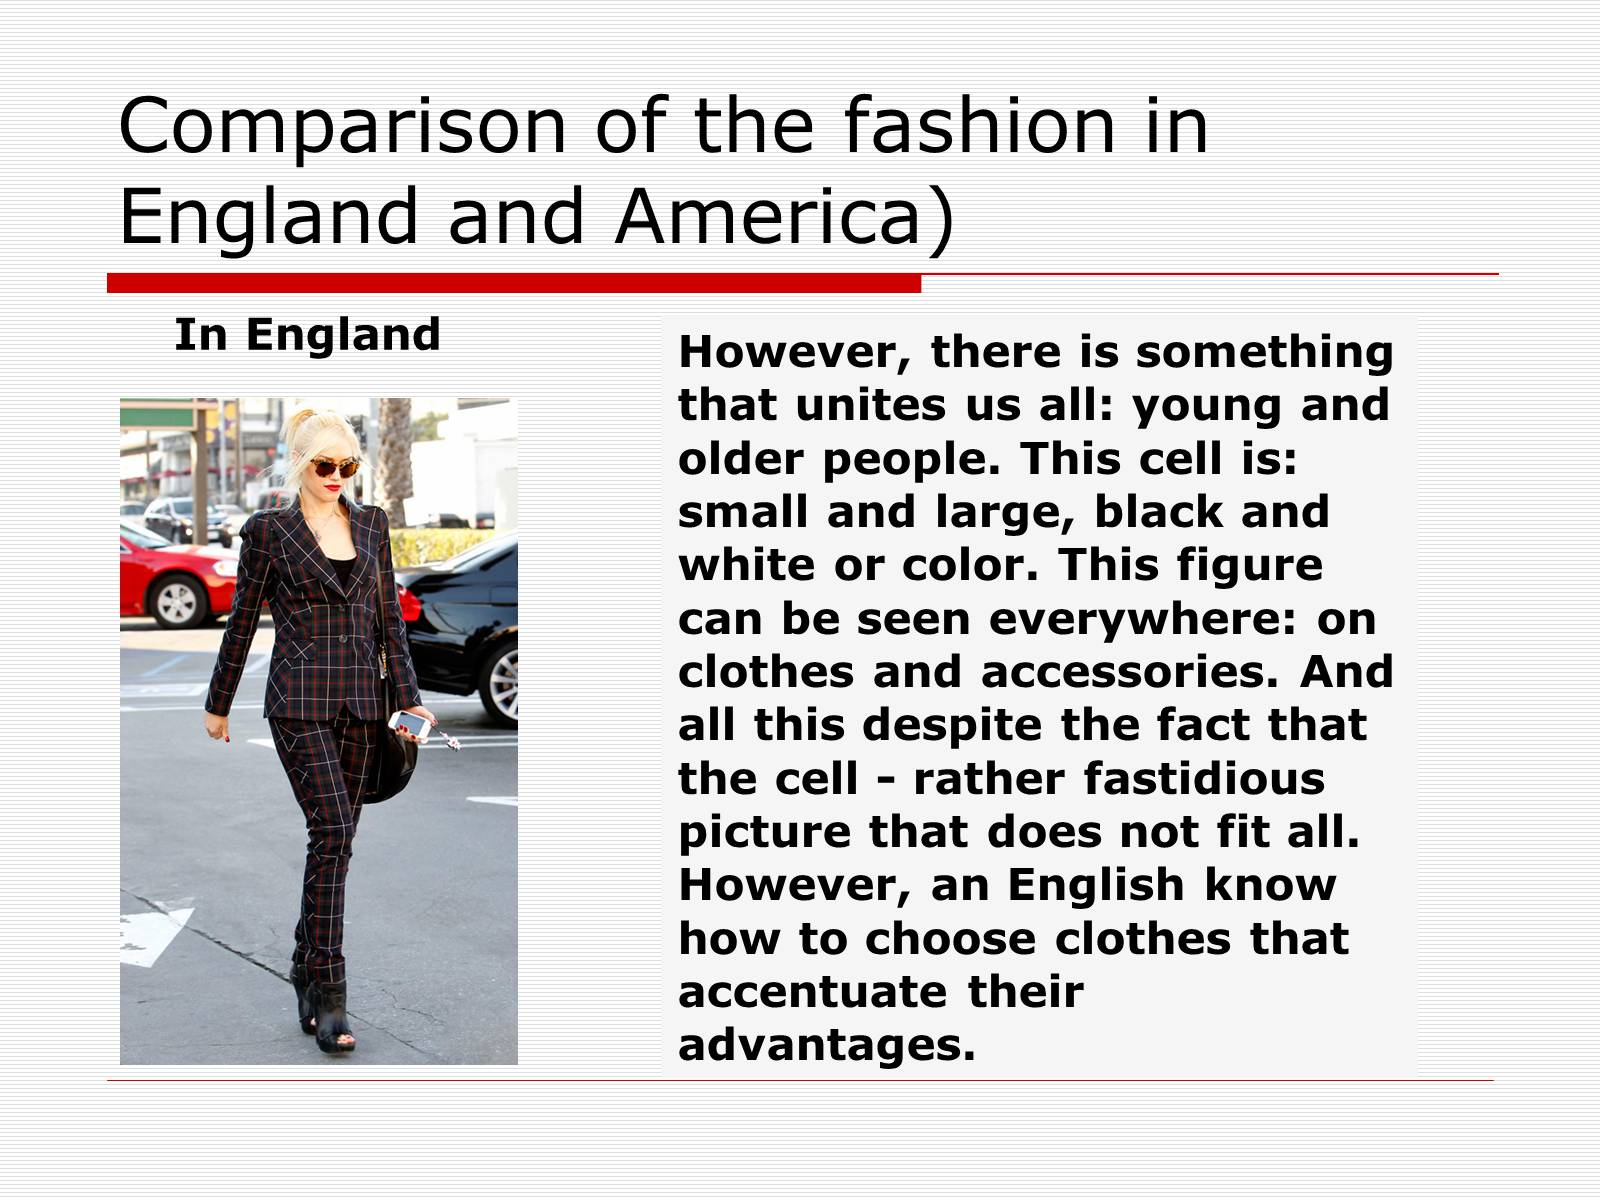 Презентація на тему «Comparison of the fashion in England and America» - Слайд #25